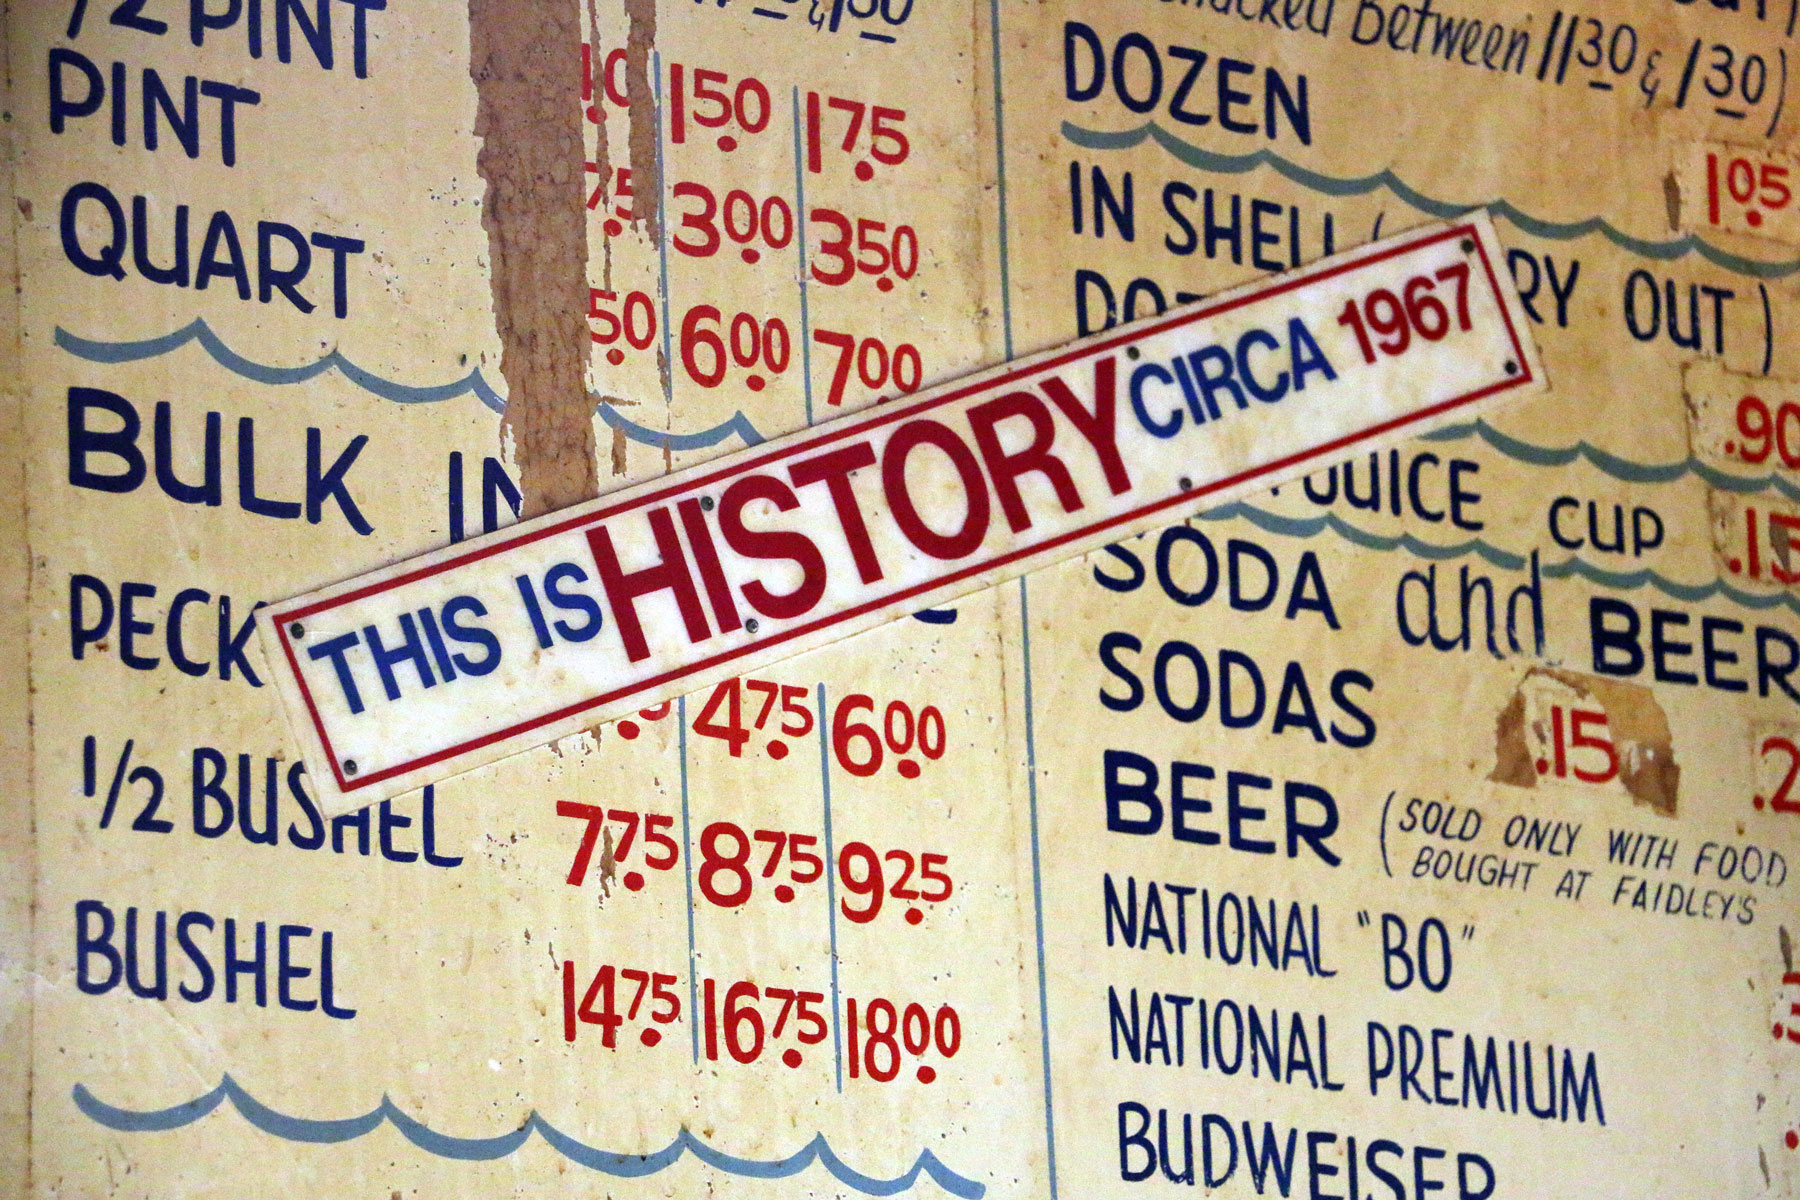 faidleys-this-is-history-sign